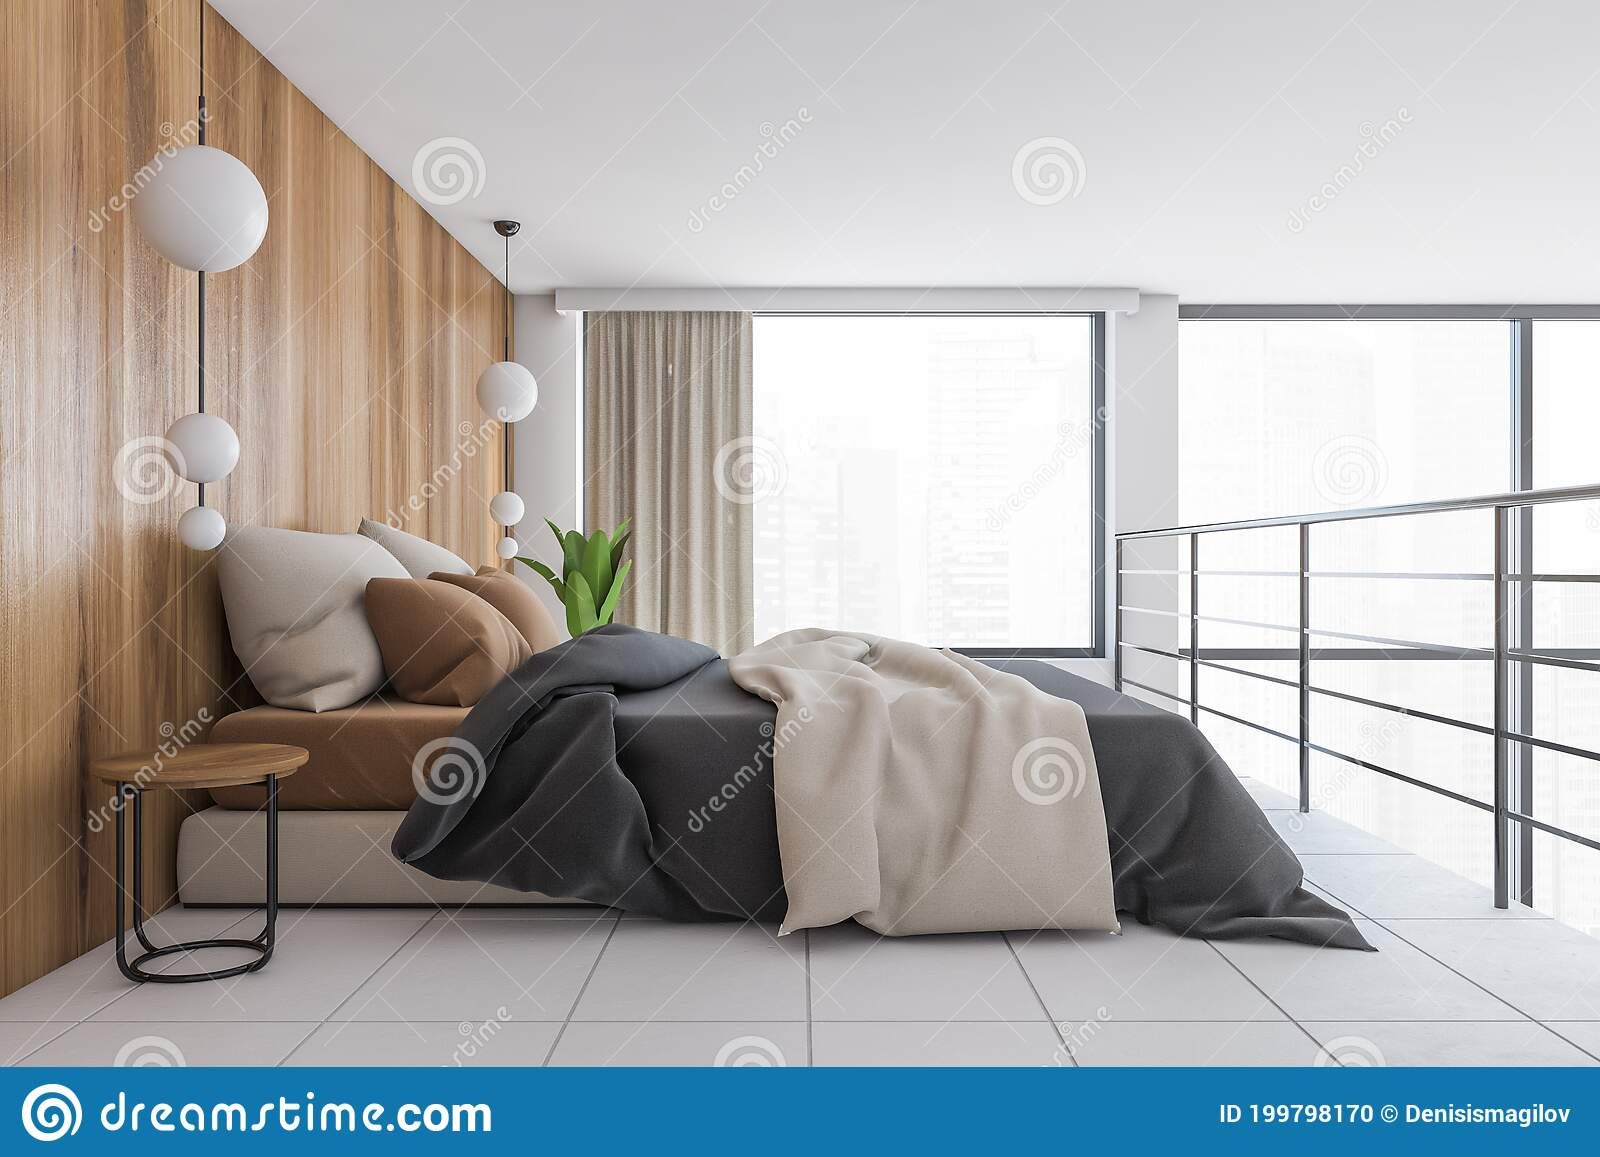 Bed On The Second Floor With Linens Wooden And White Minimalist Sleeping Room Stock Illustration Illustration Of Plant Render 199798170